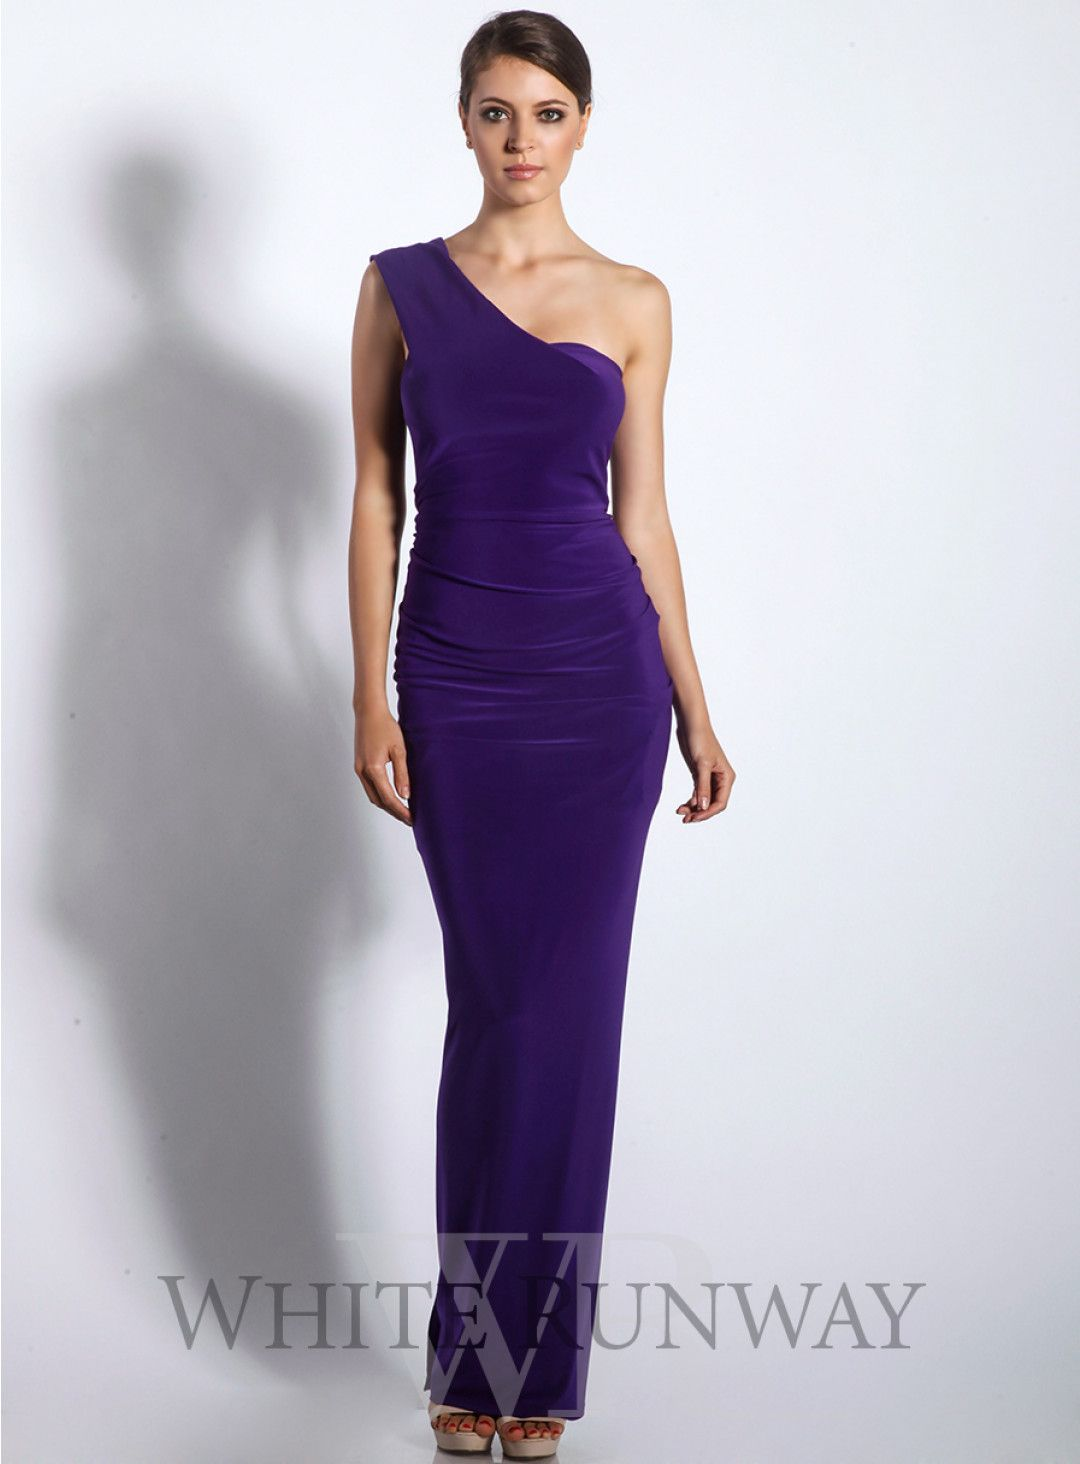 Ebony one shoulder dress a stunning full length dress by mr k a a stunning full length dress by mr k a one bridesmaid dresses onlineone ombrellifo Choice Image